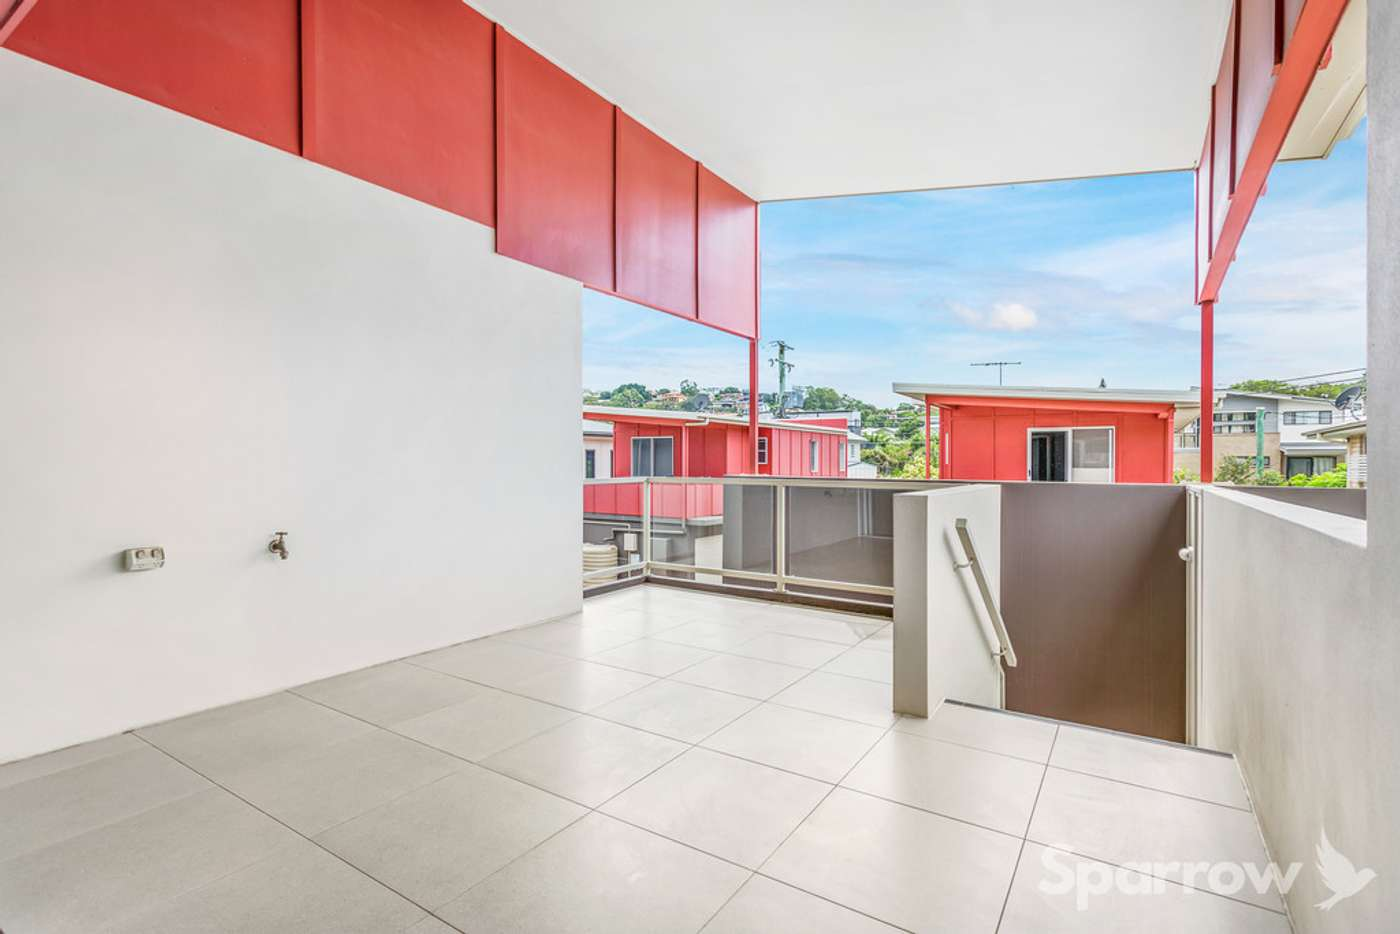 Sixth view of Homely unit listing, 6/25 Howsan Street, Mount Gravatt East QLD 4122